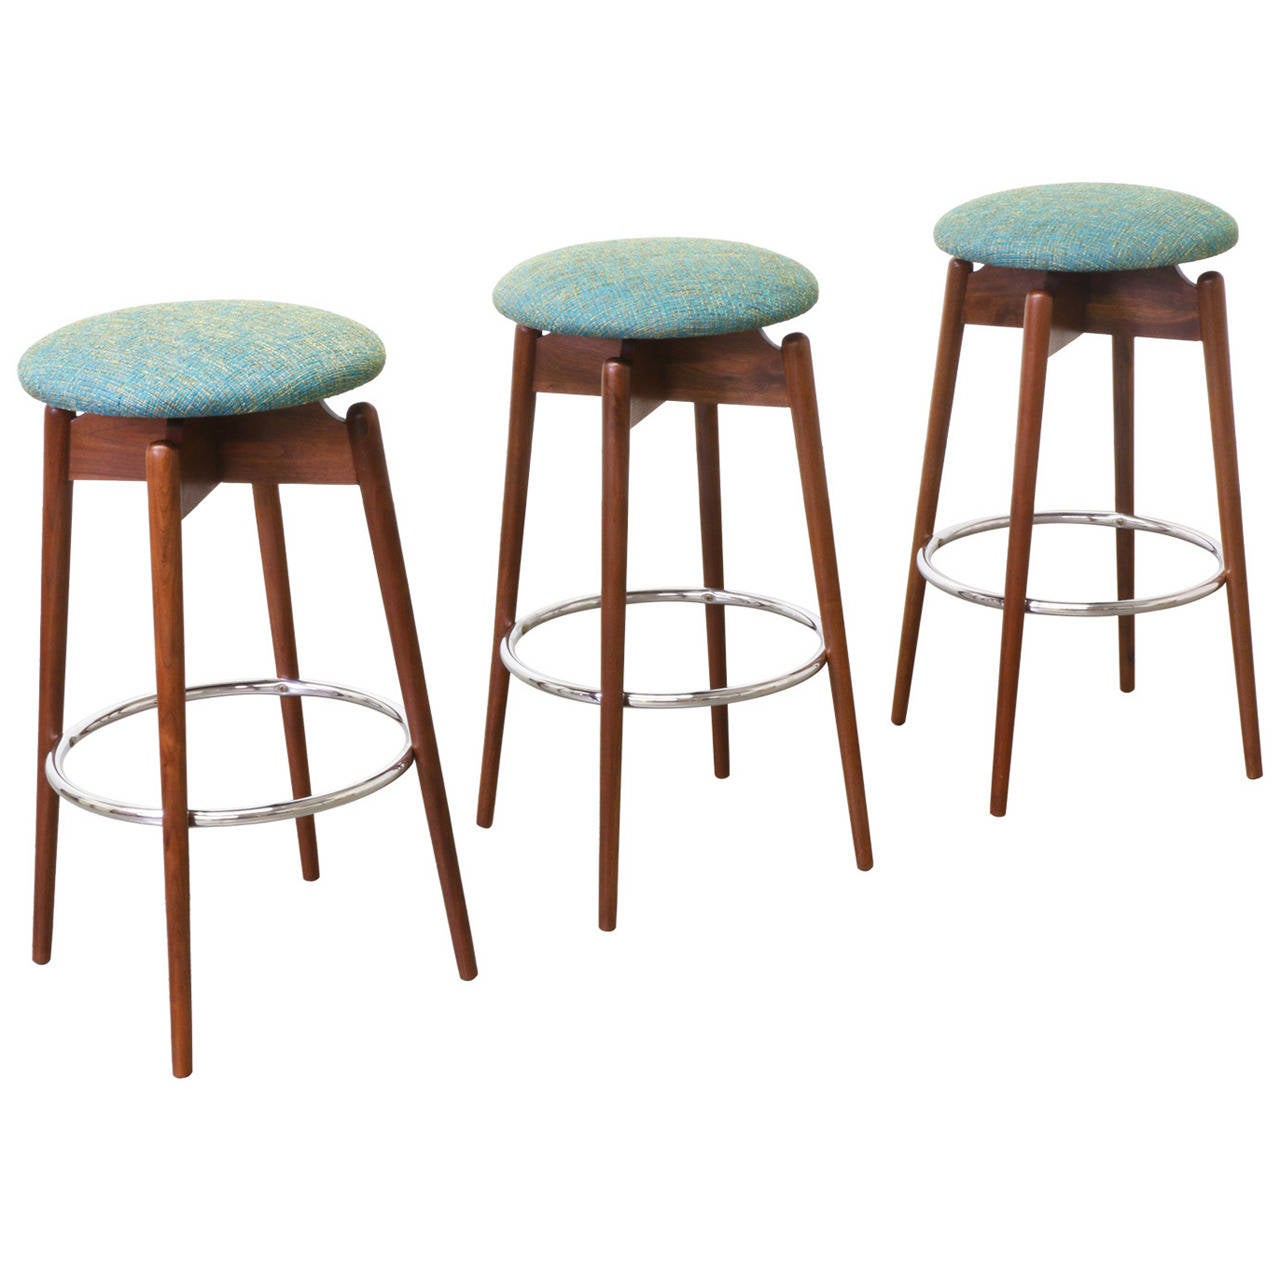 midcentury modern walnut sculpted bar stools at stdibs - midcentury modern walnut sculpted bar stools